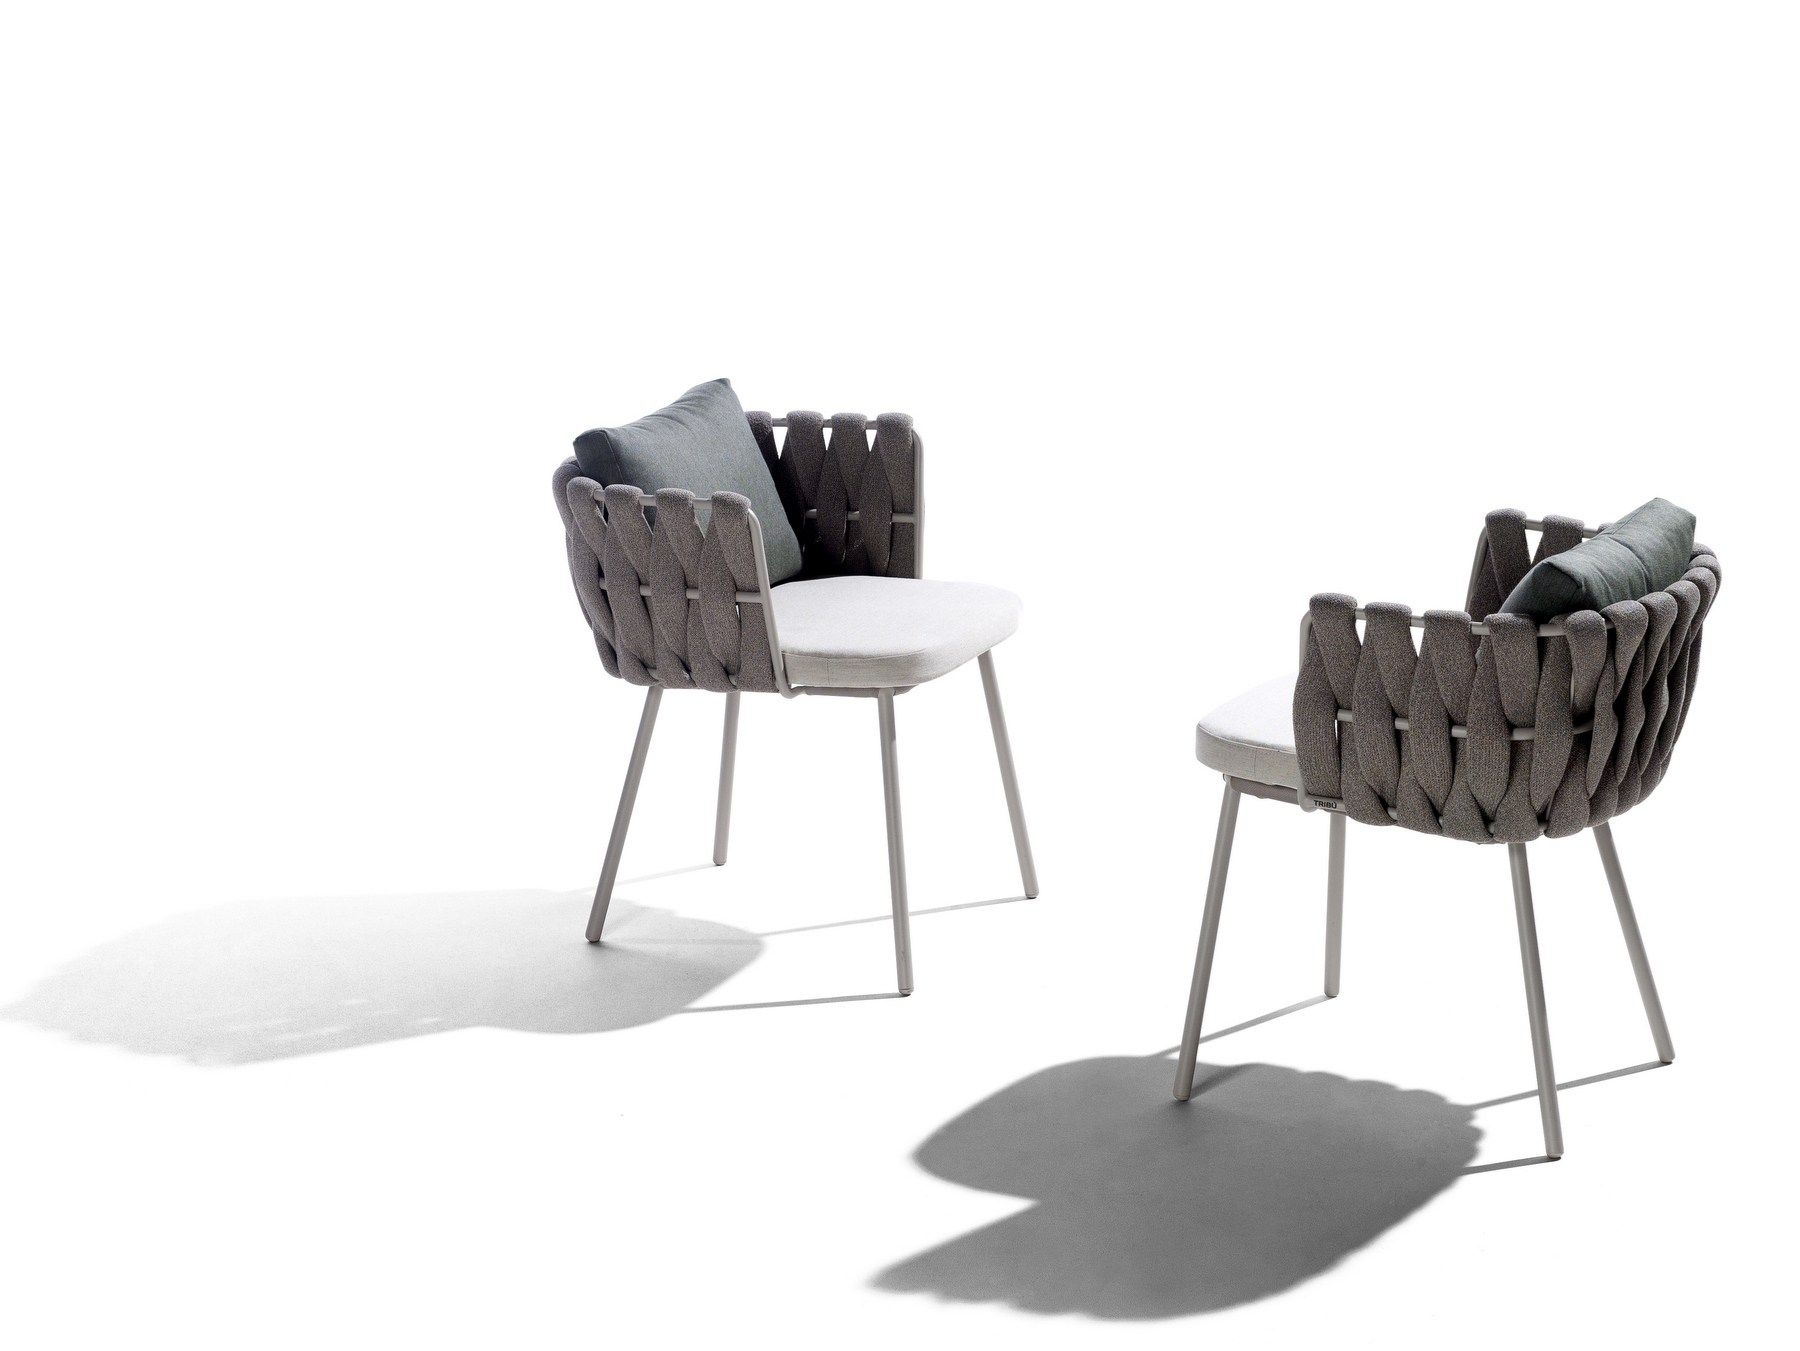 Garden Chair With Armrests Tosca Collection By Trib - Design